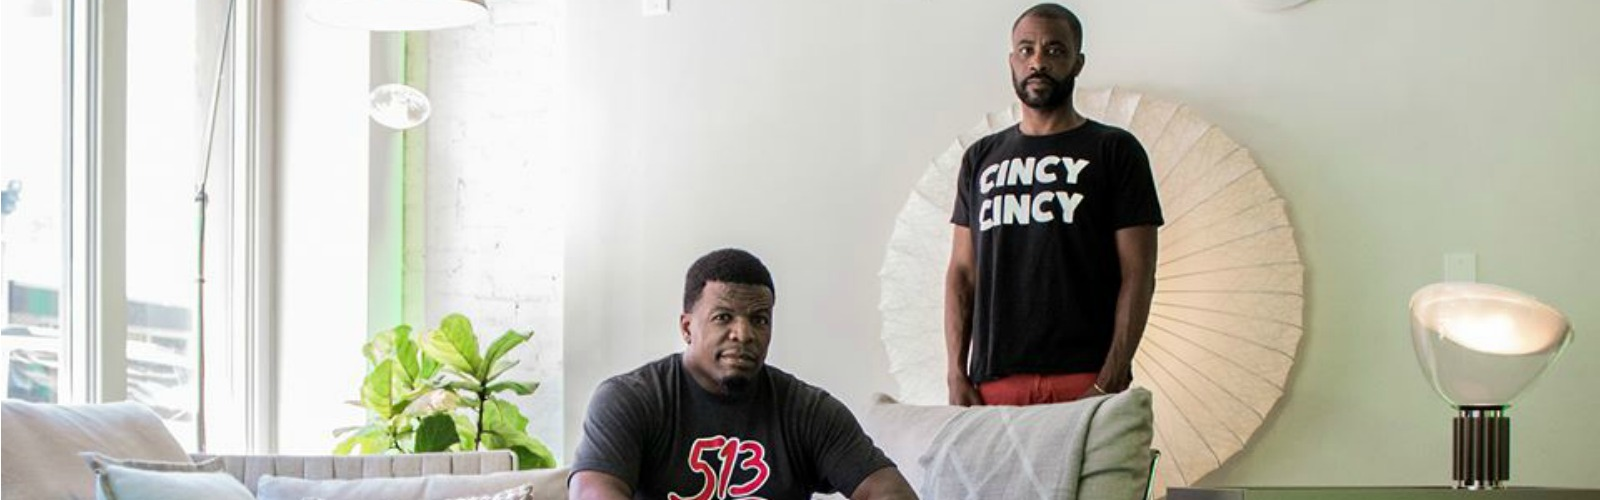 Cincinnati natives Tim'm West (seated) and Derrick Bell  <span class='image-credits'>Provided</span>